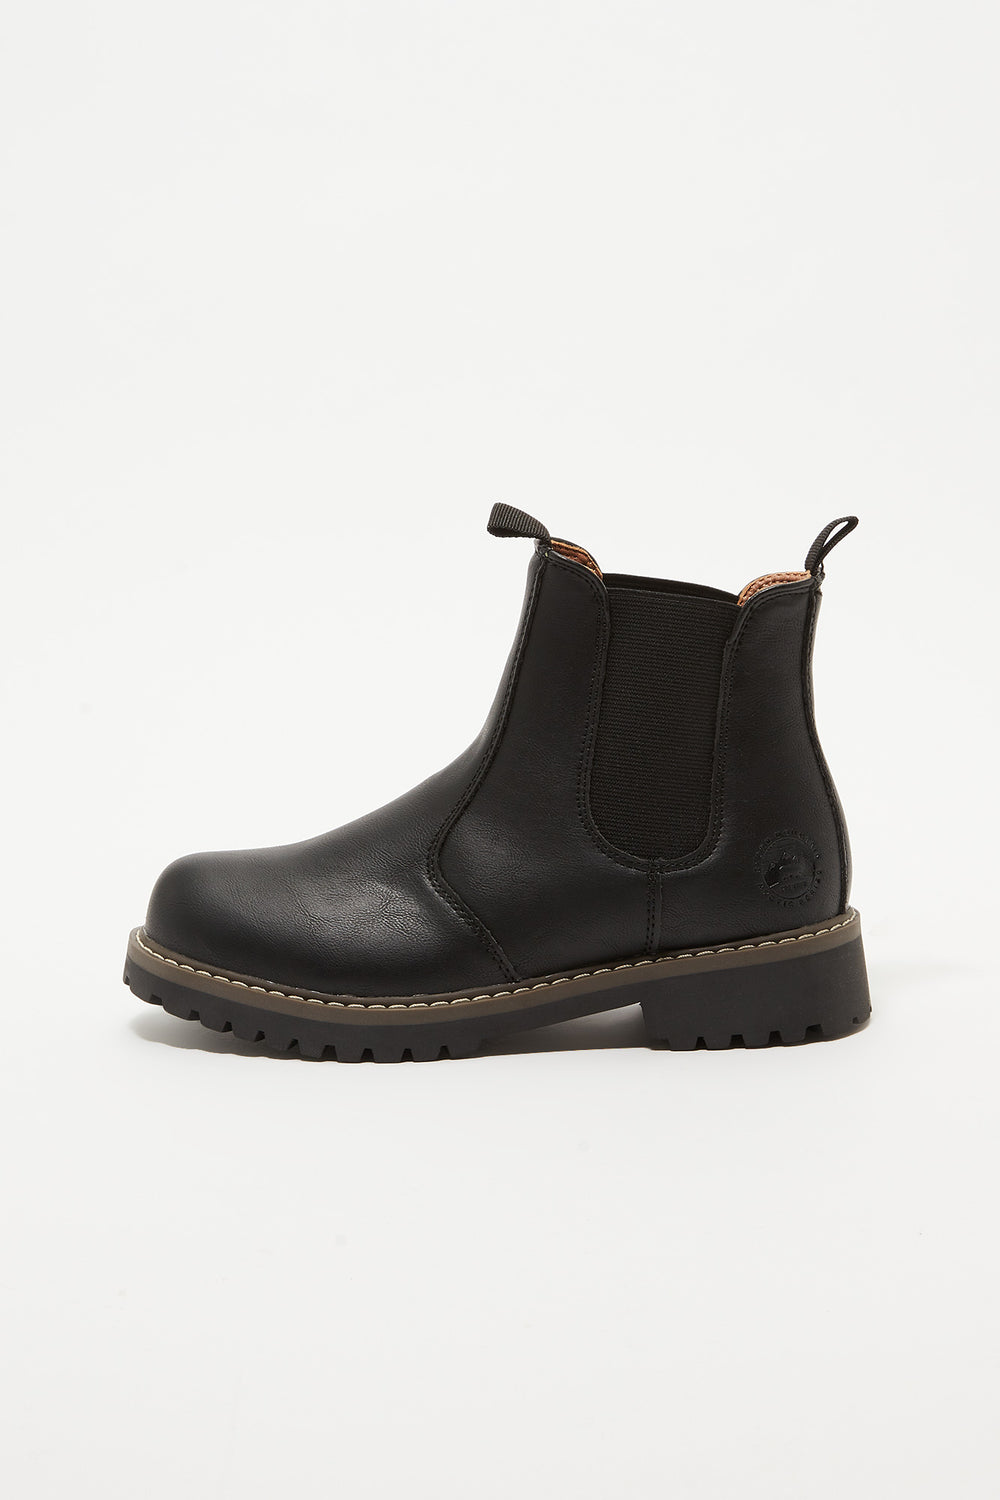 Storm Mountain Youth Faux-Fur Chelsea Boots Black